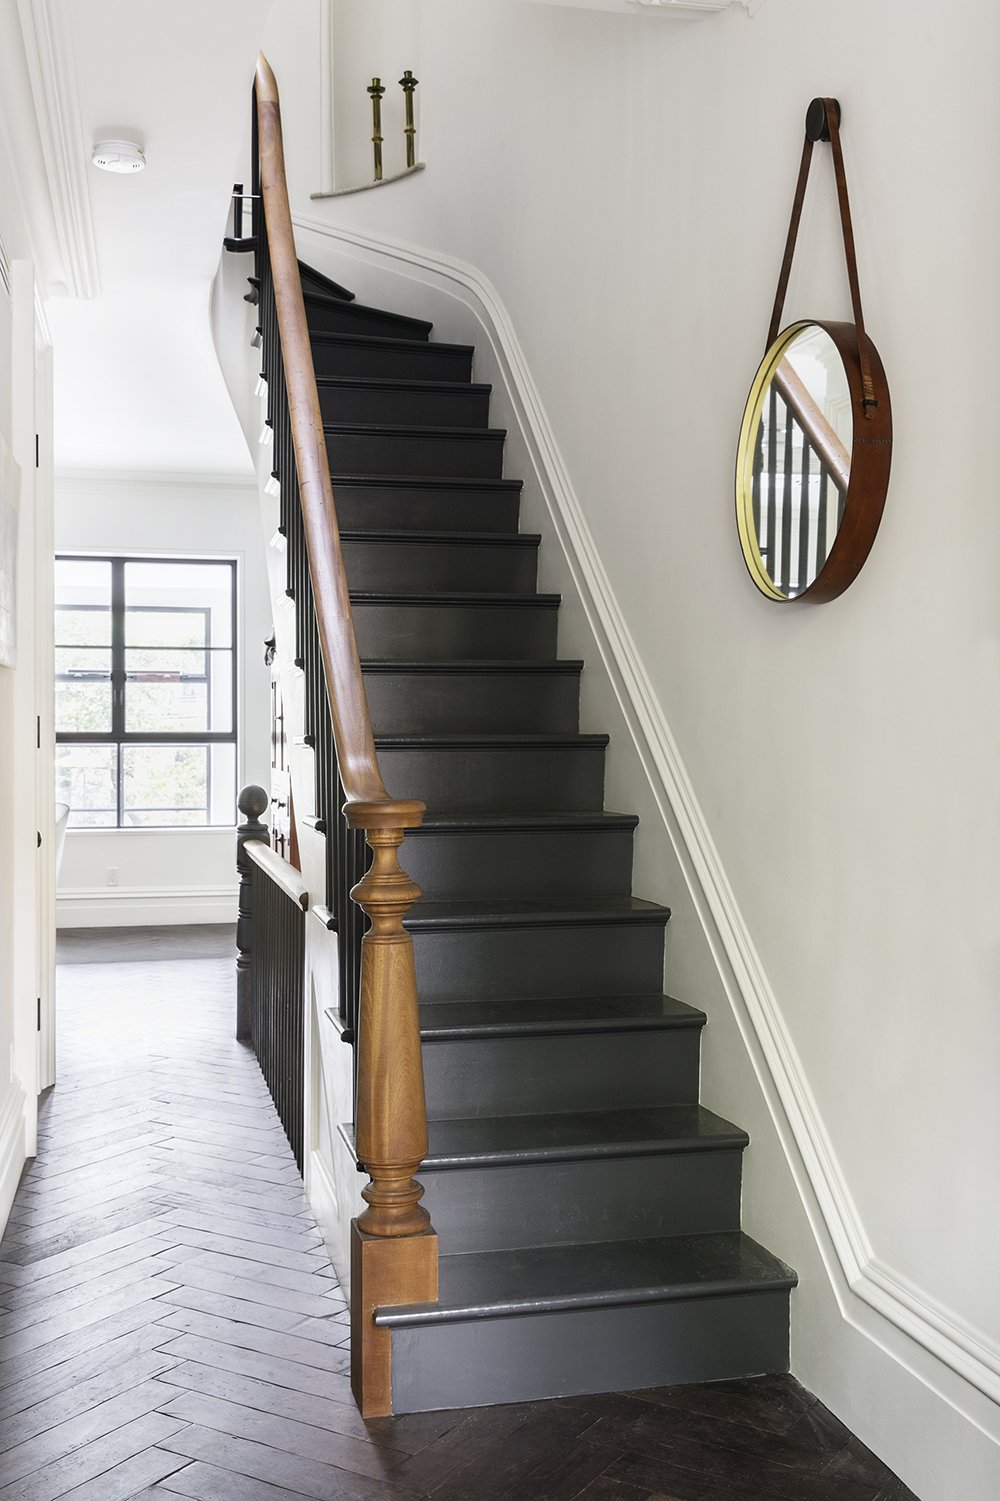 Reclaimed oak with a custom finish by LV Wood surrounds a staircase in a herringbone pattern. The new stairs are painted off black by Farrow & Ball, and the handrail that lines them is of salvaged mahogany.  190+ Best Modern Staircase Ideas by Dwell from A Neglected Brooklyn Townhouse Becomes a Home That's Primed for Entertaining